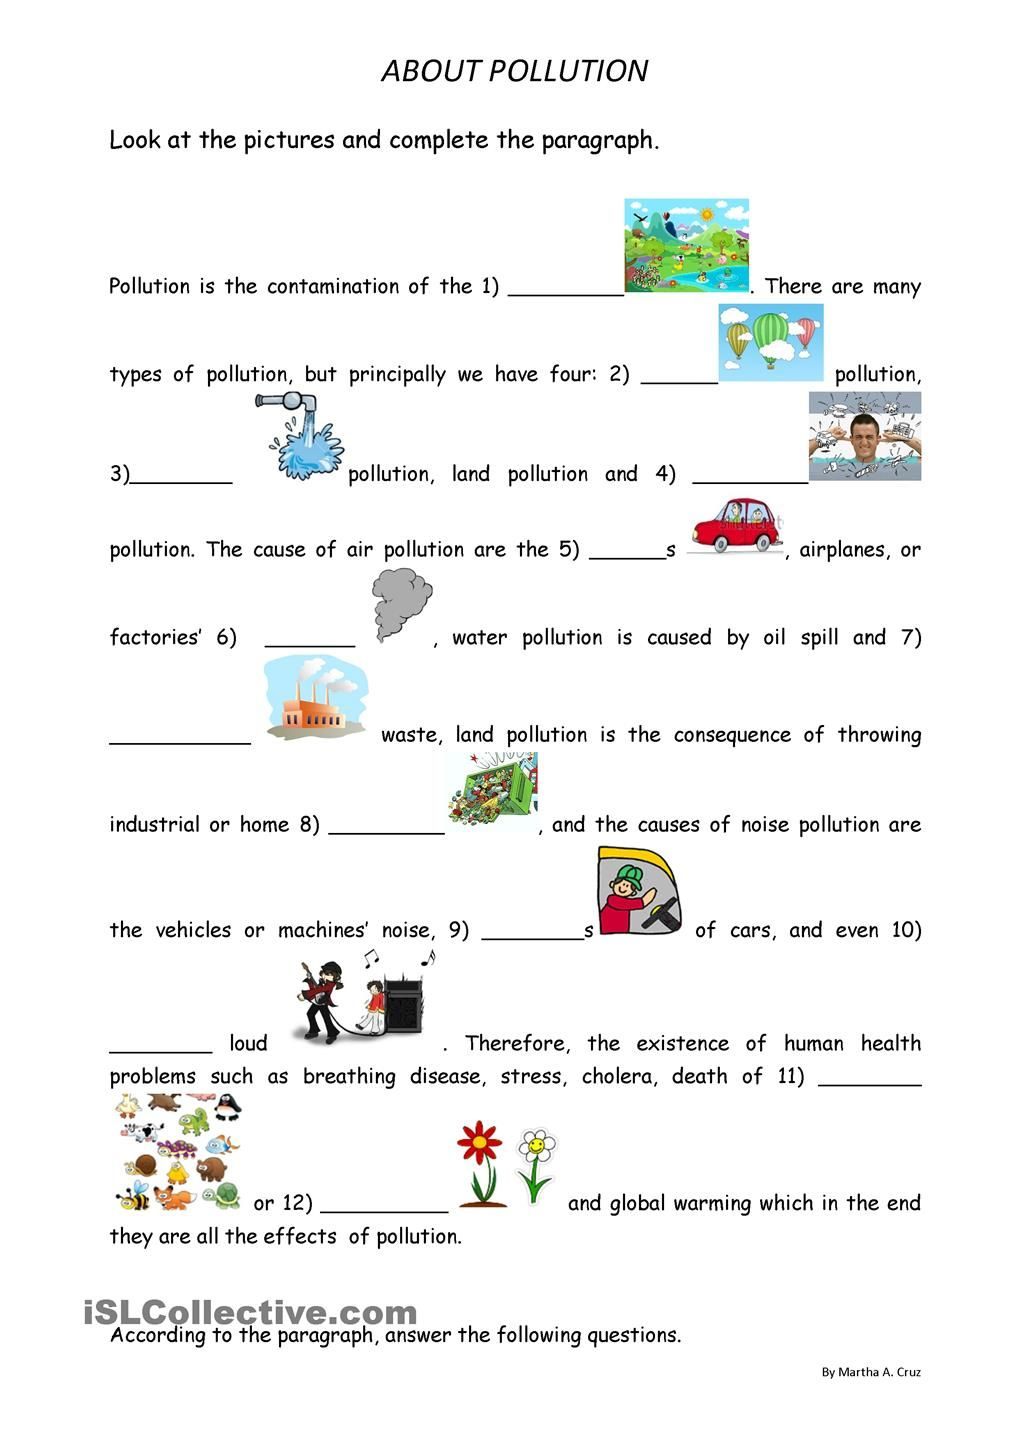 About pollution | pollution | Lesson plans, Health education, How to